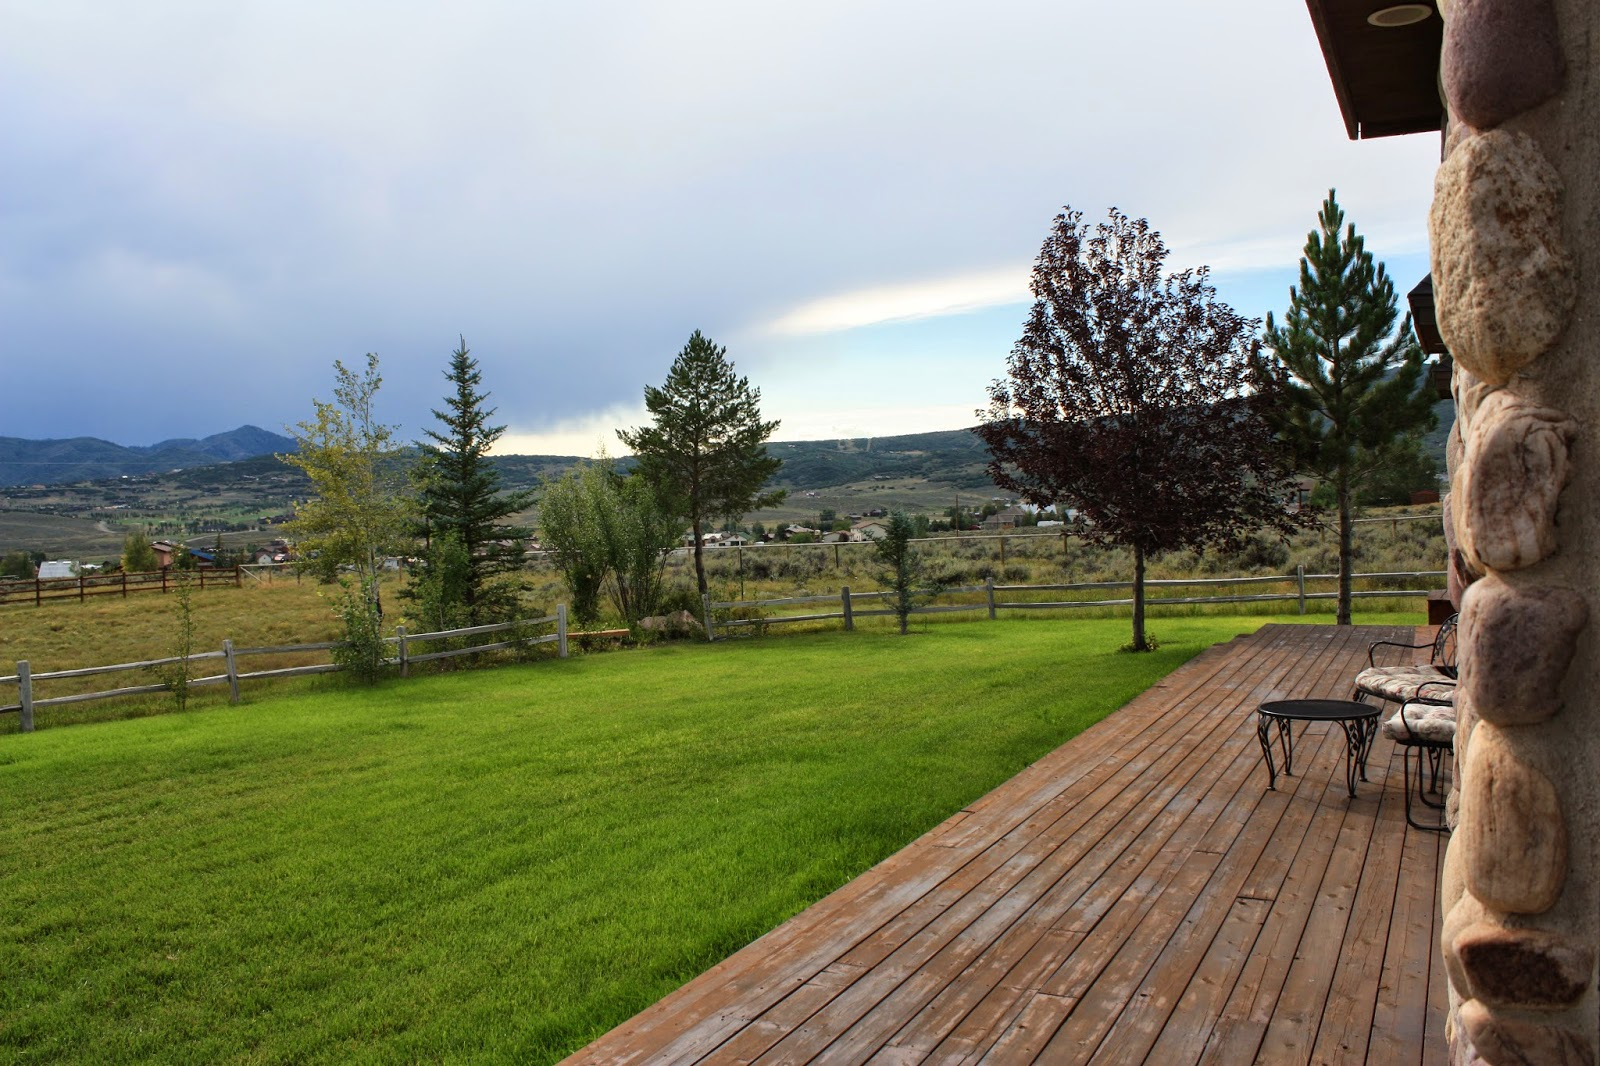 Park City Utah Ranch, Farm House, Green grass, Mountains